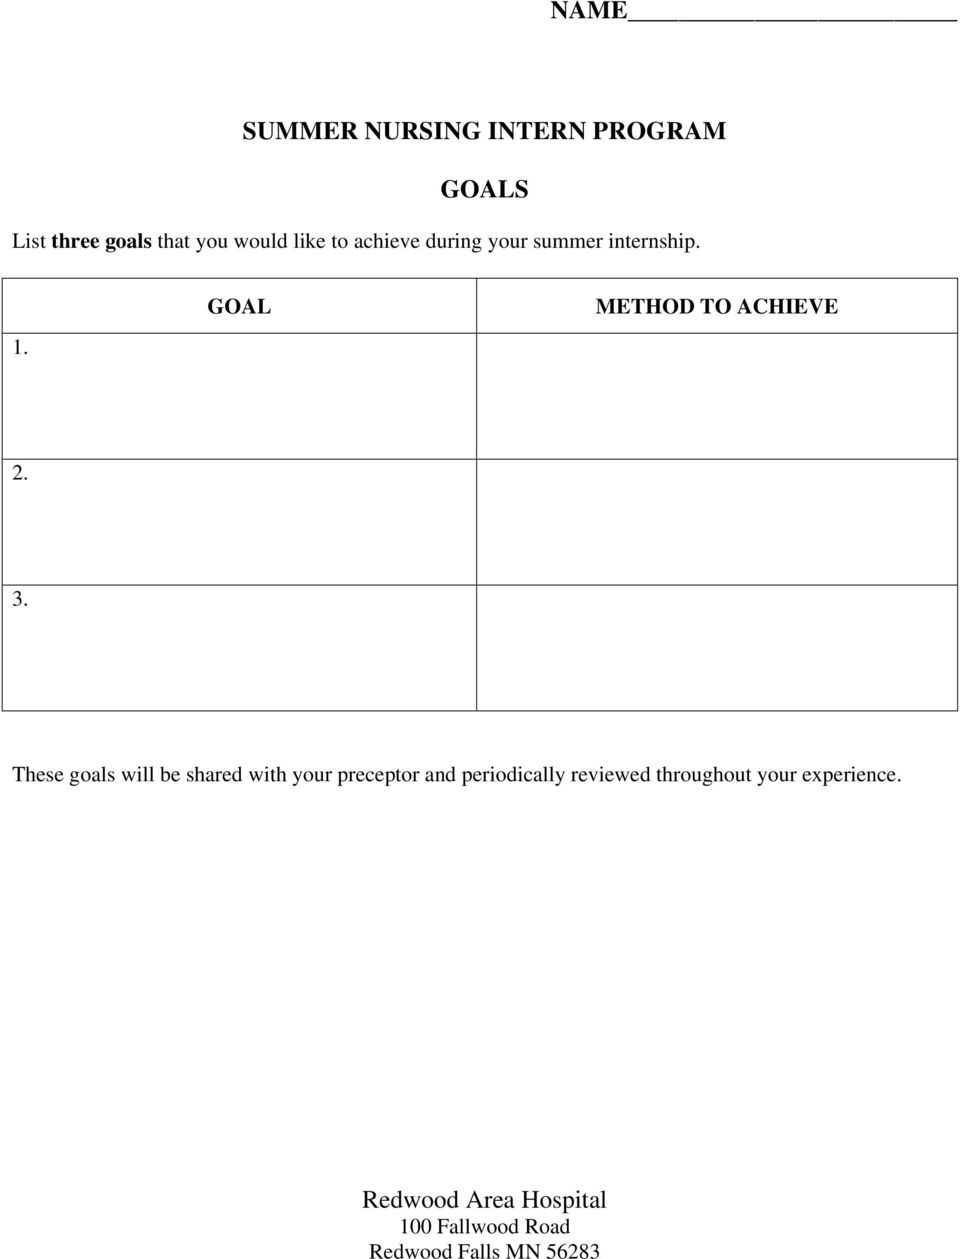 These goals will be shared with your preceptor and periodically reviewed